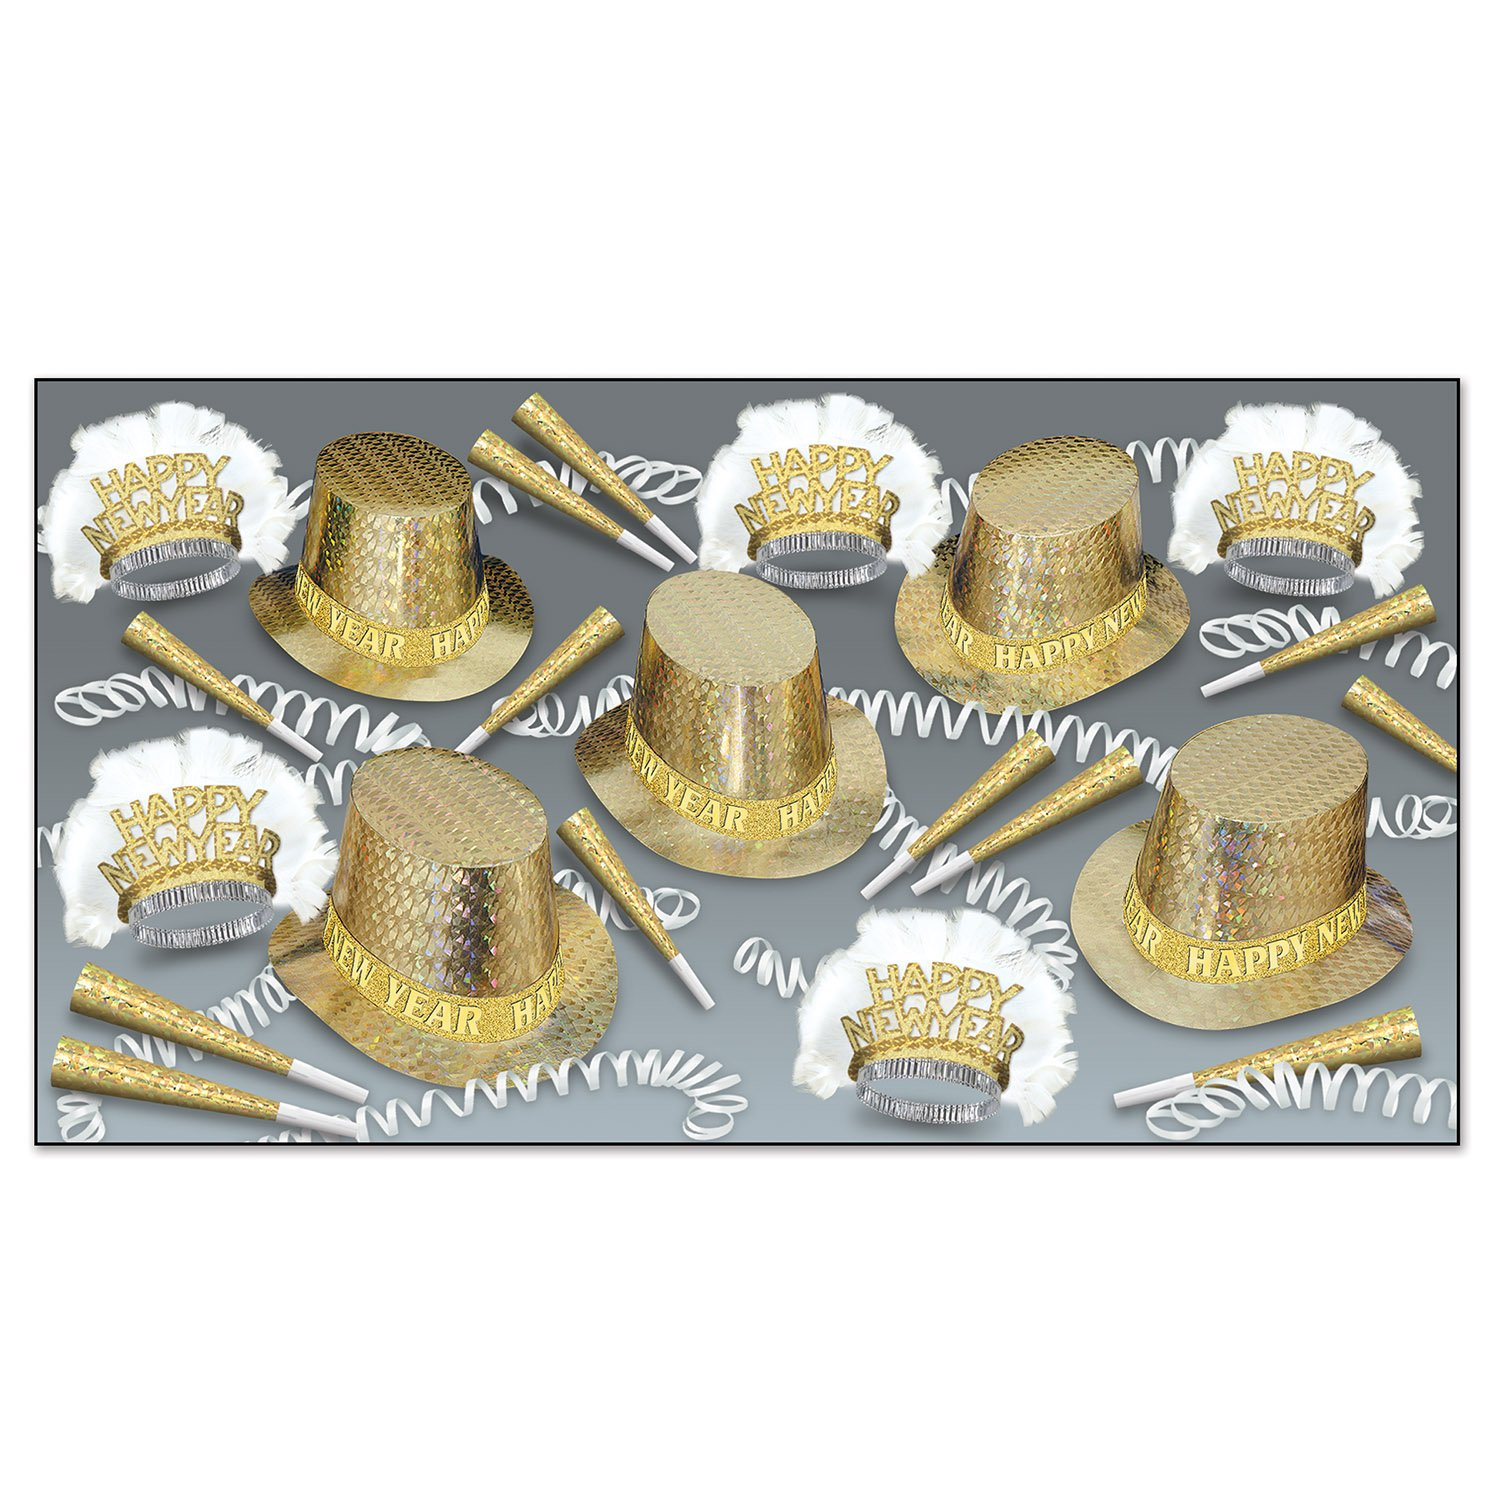 Beistle Topaz Happy New Year Assortment for 50, Gold/White